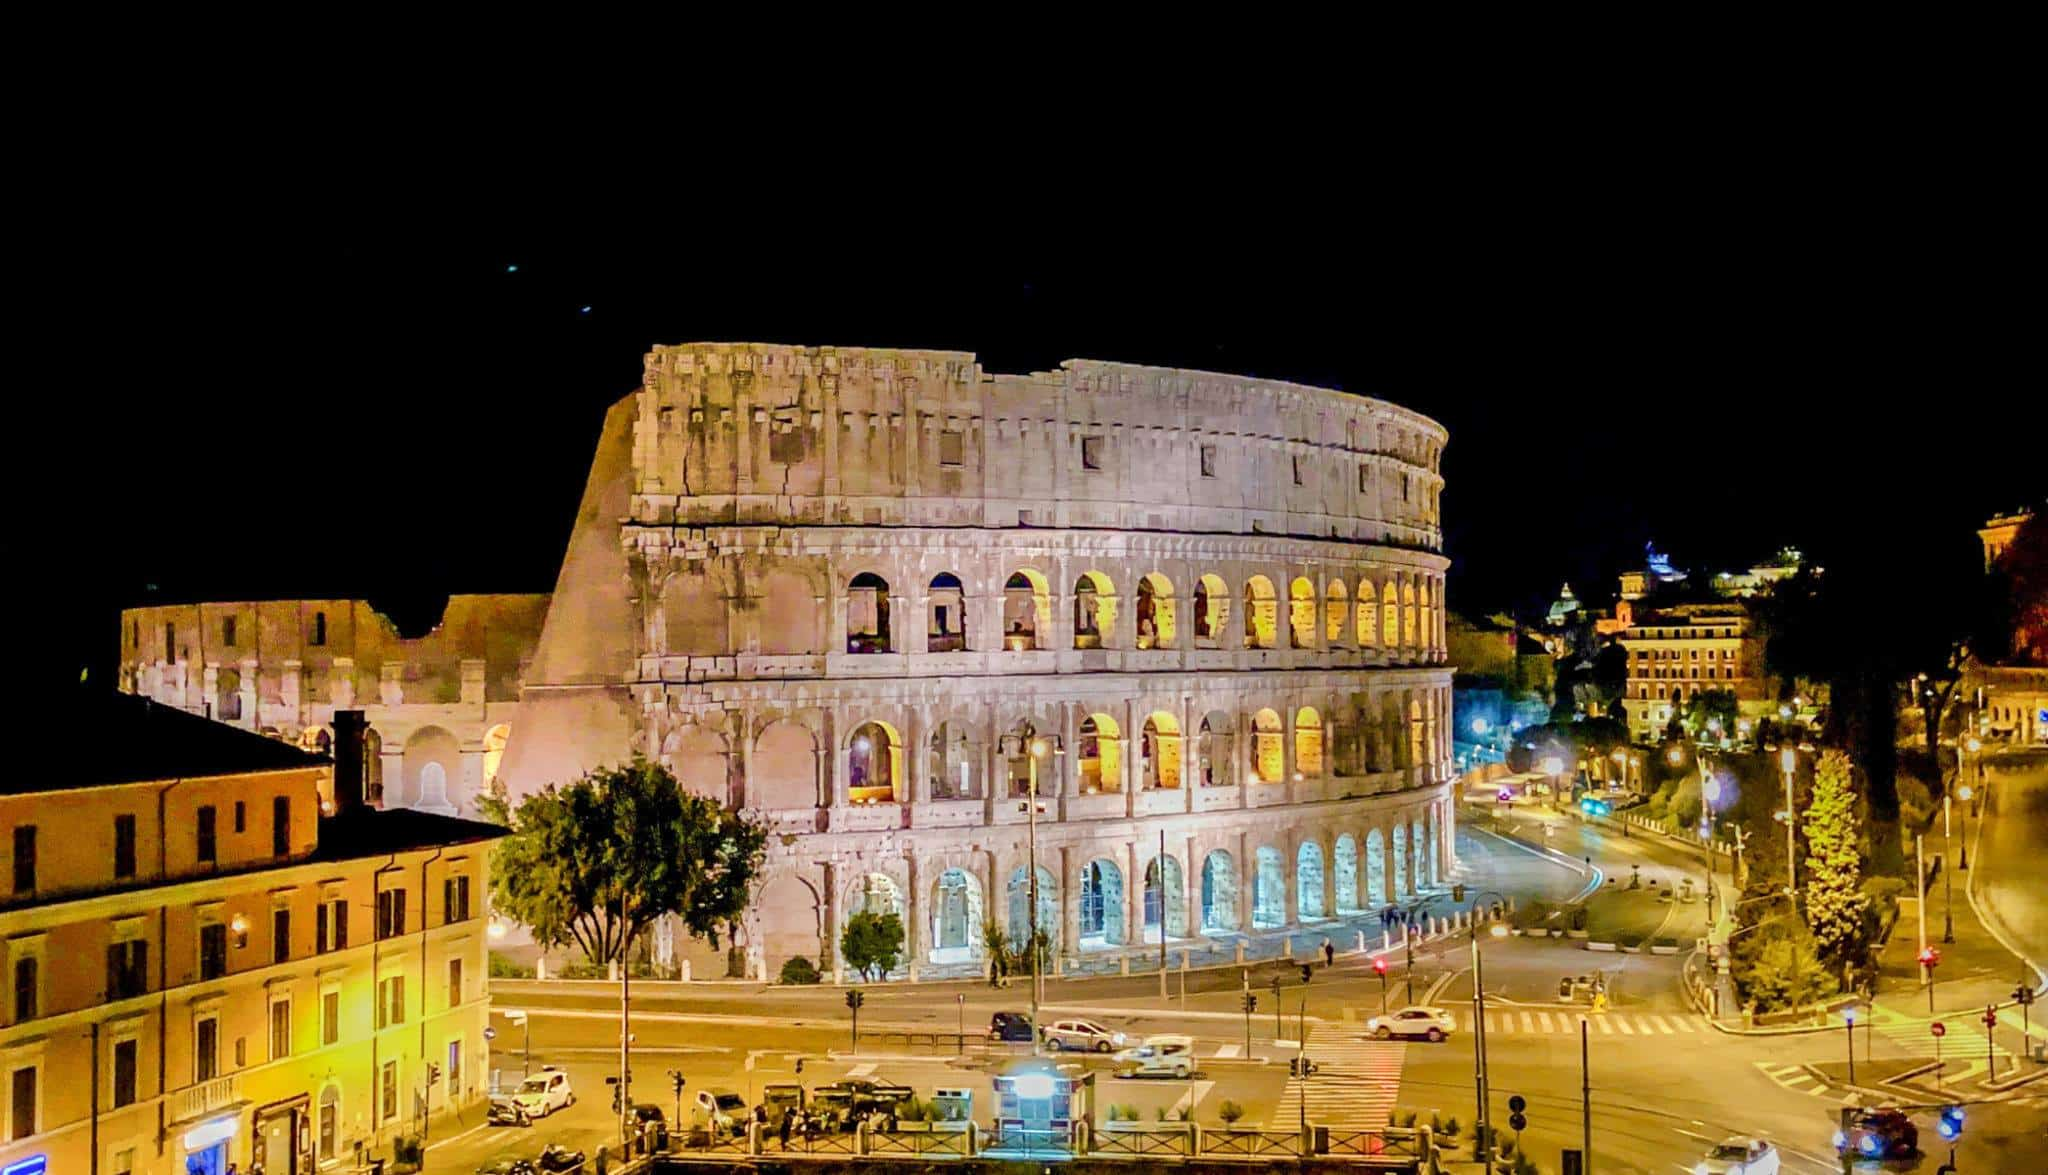 Palazzo Manfredi 5 Star Luxury Hotel Near The Colosseum Rome